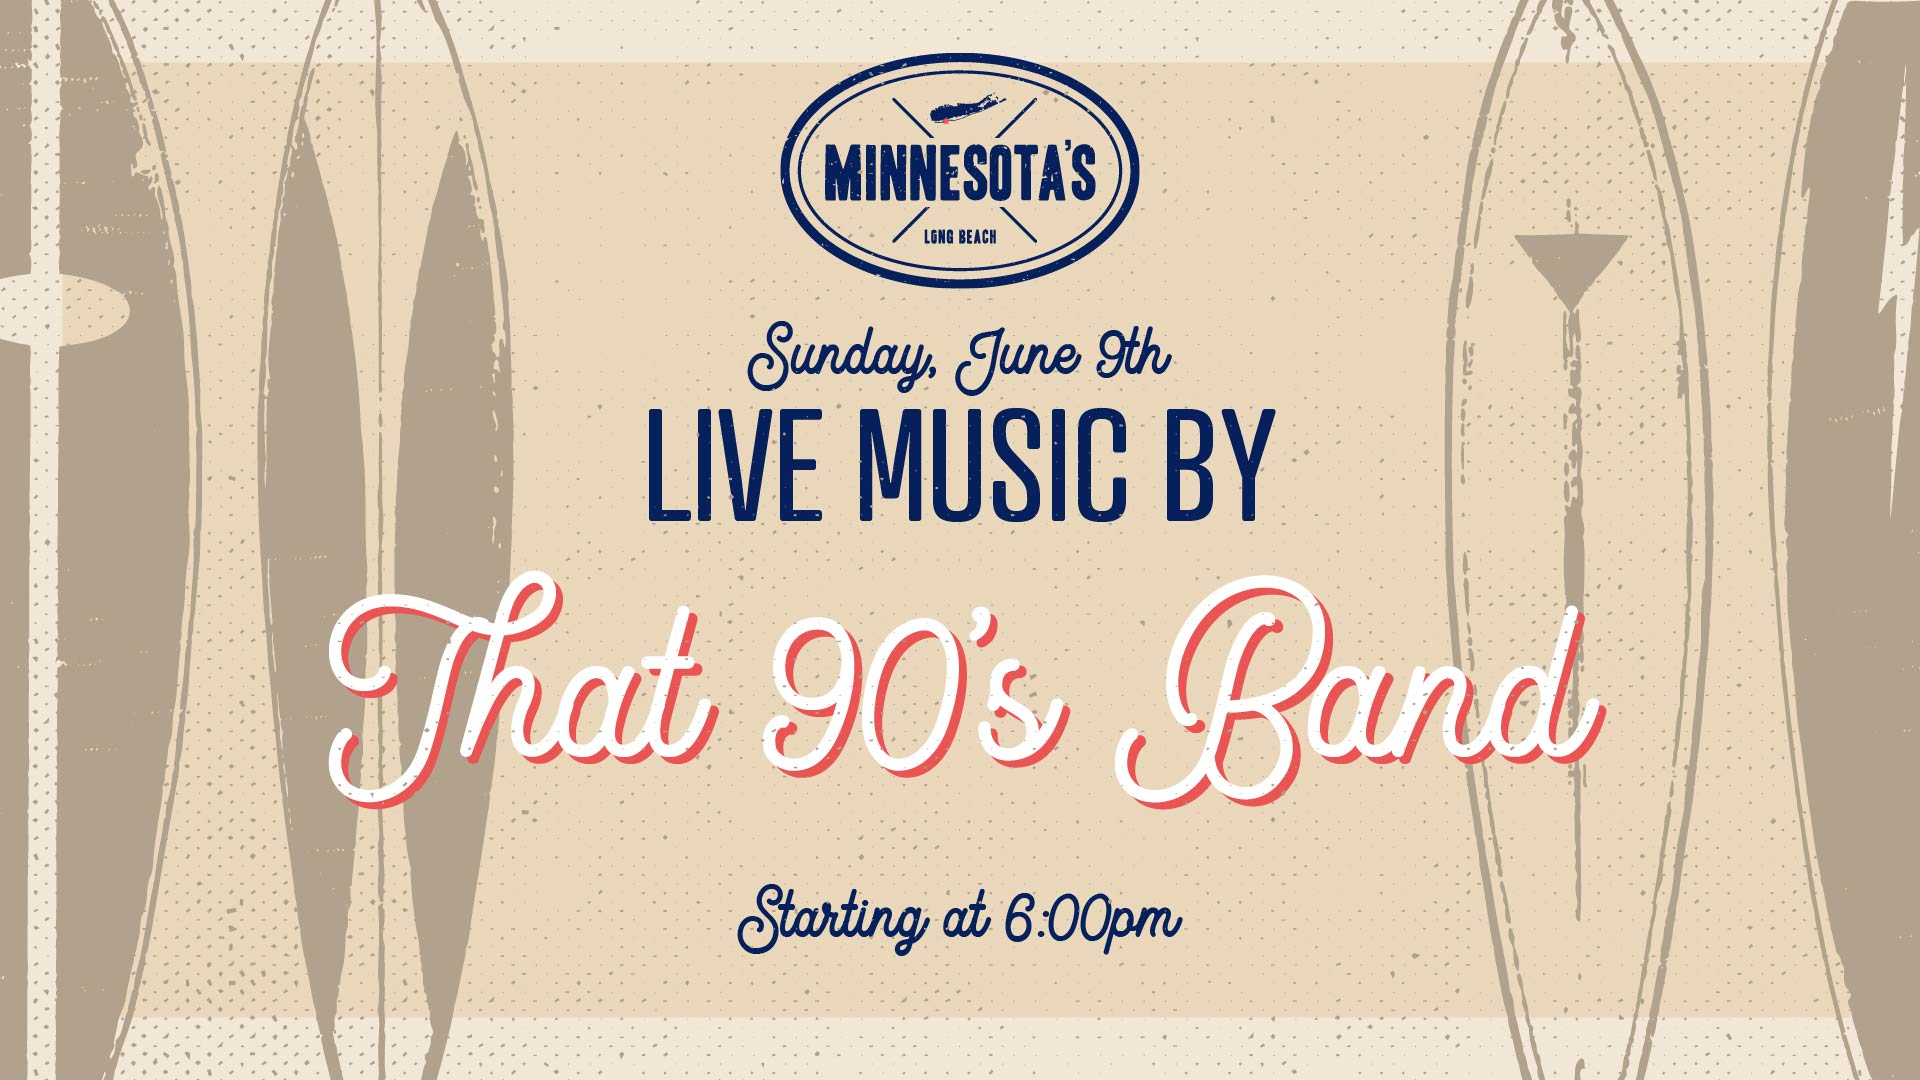 Flyer for that 90s band live at minnesotas on june 9th starting at 6pm